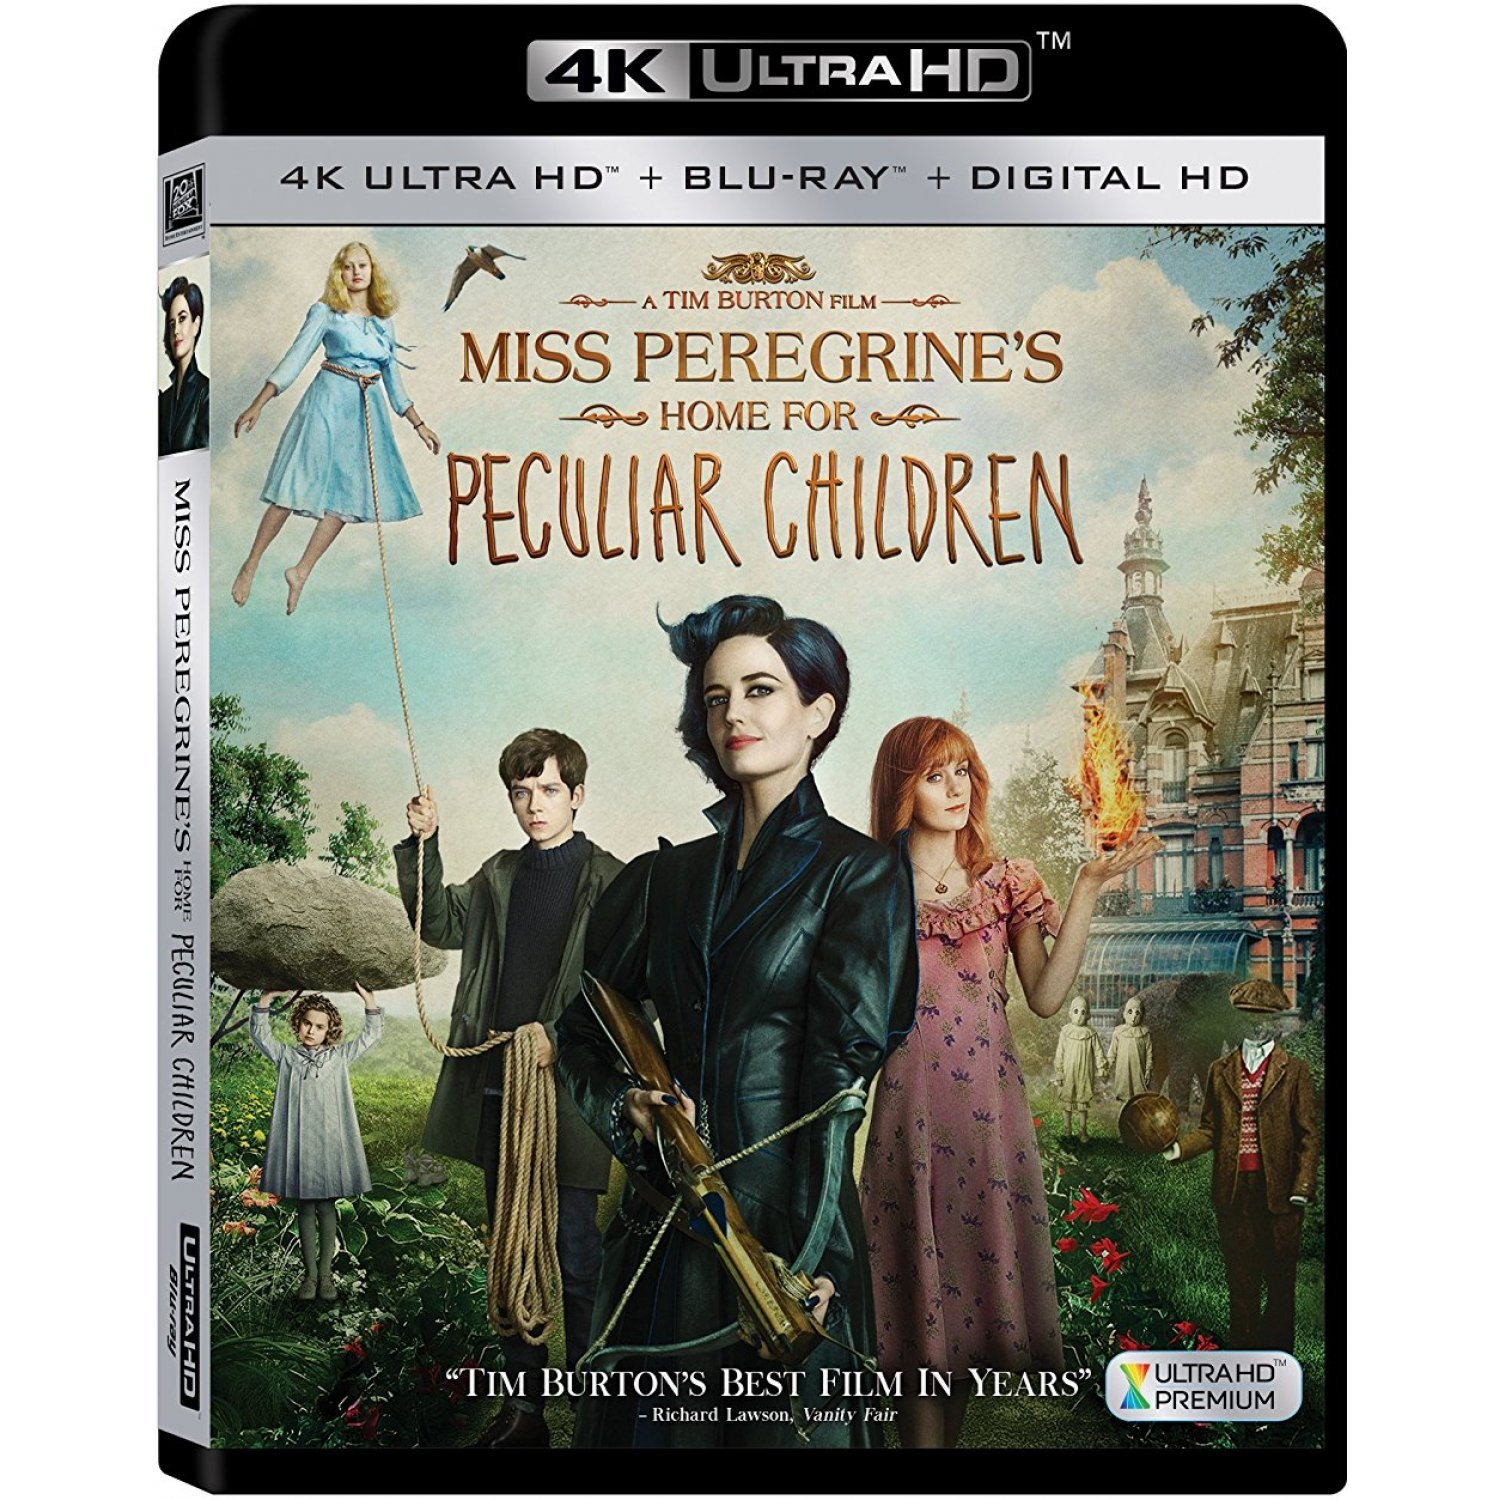 Miss Peregrine's Home for Peculiar Children (2016) [1080p] download pc